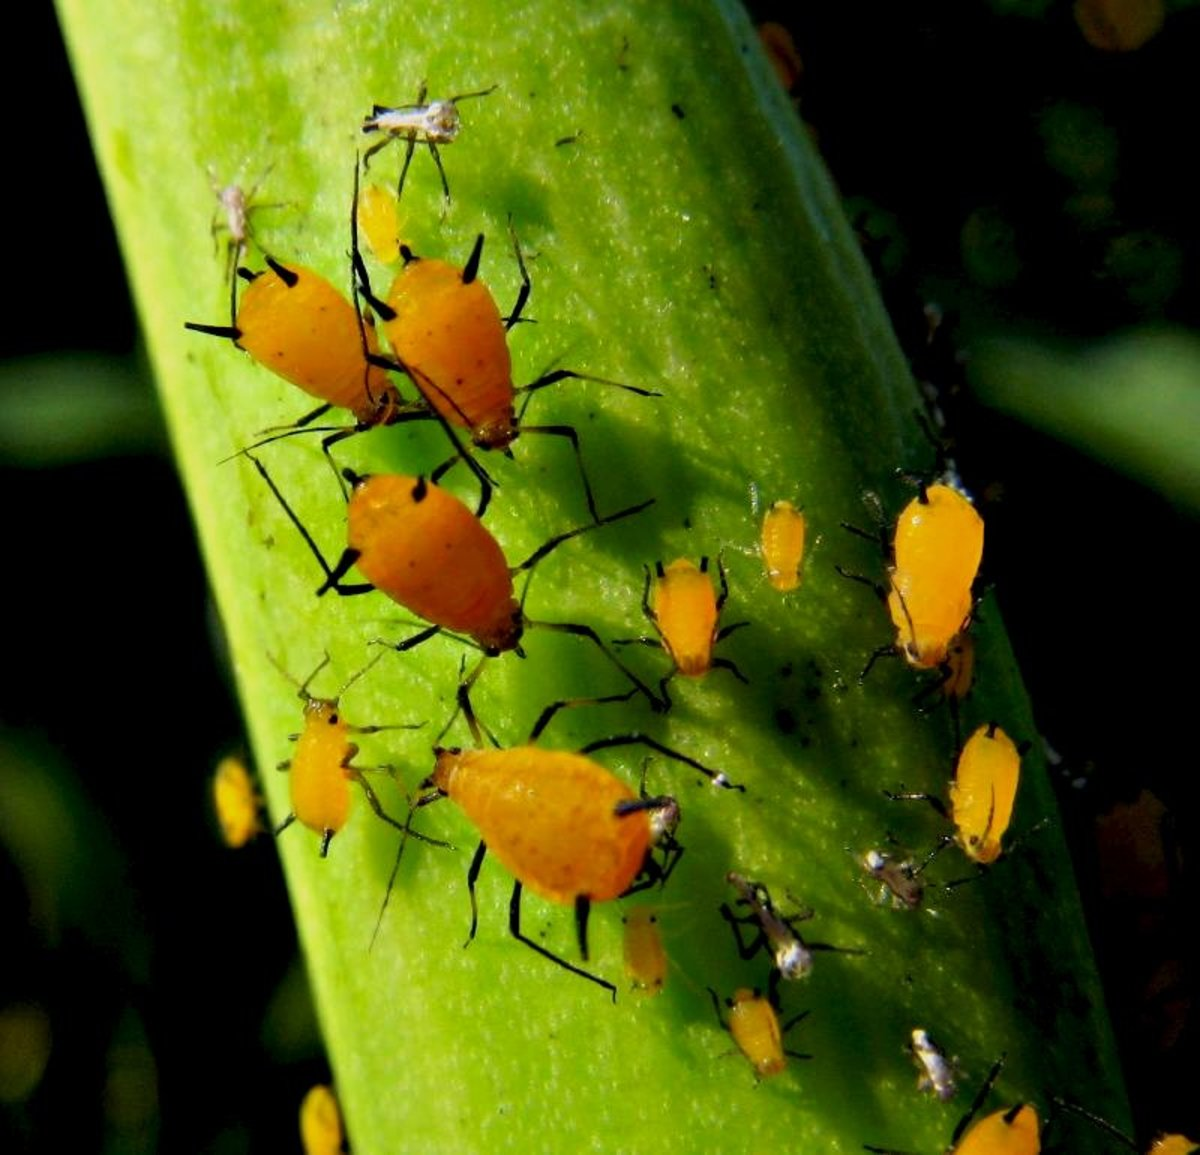 Aphids can really go to town on an organic garden, but your veggies don't have to be completely defenseless.